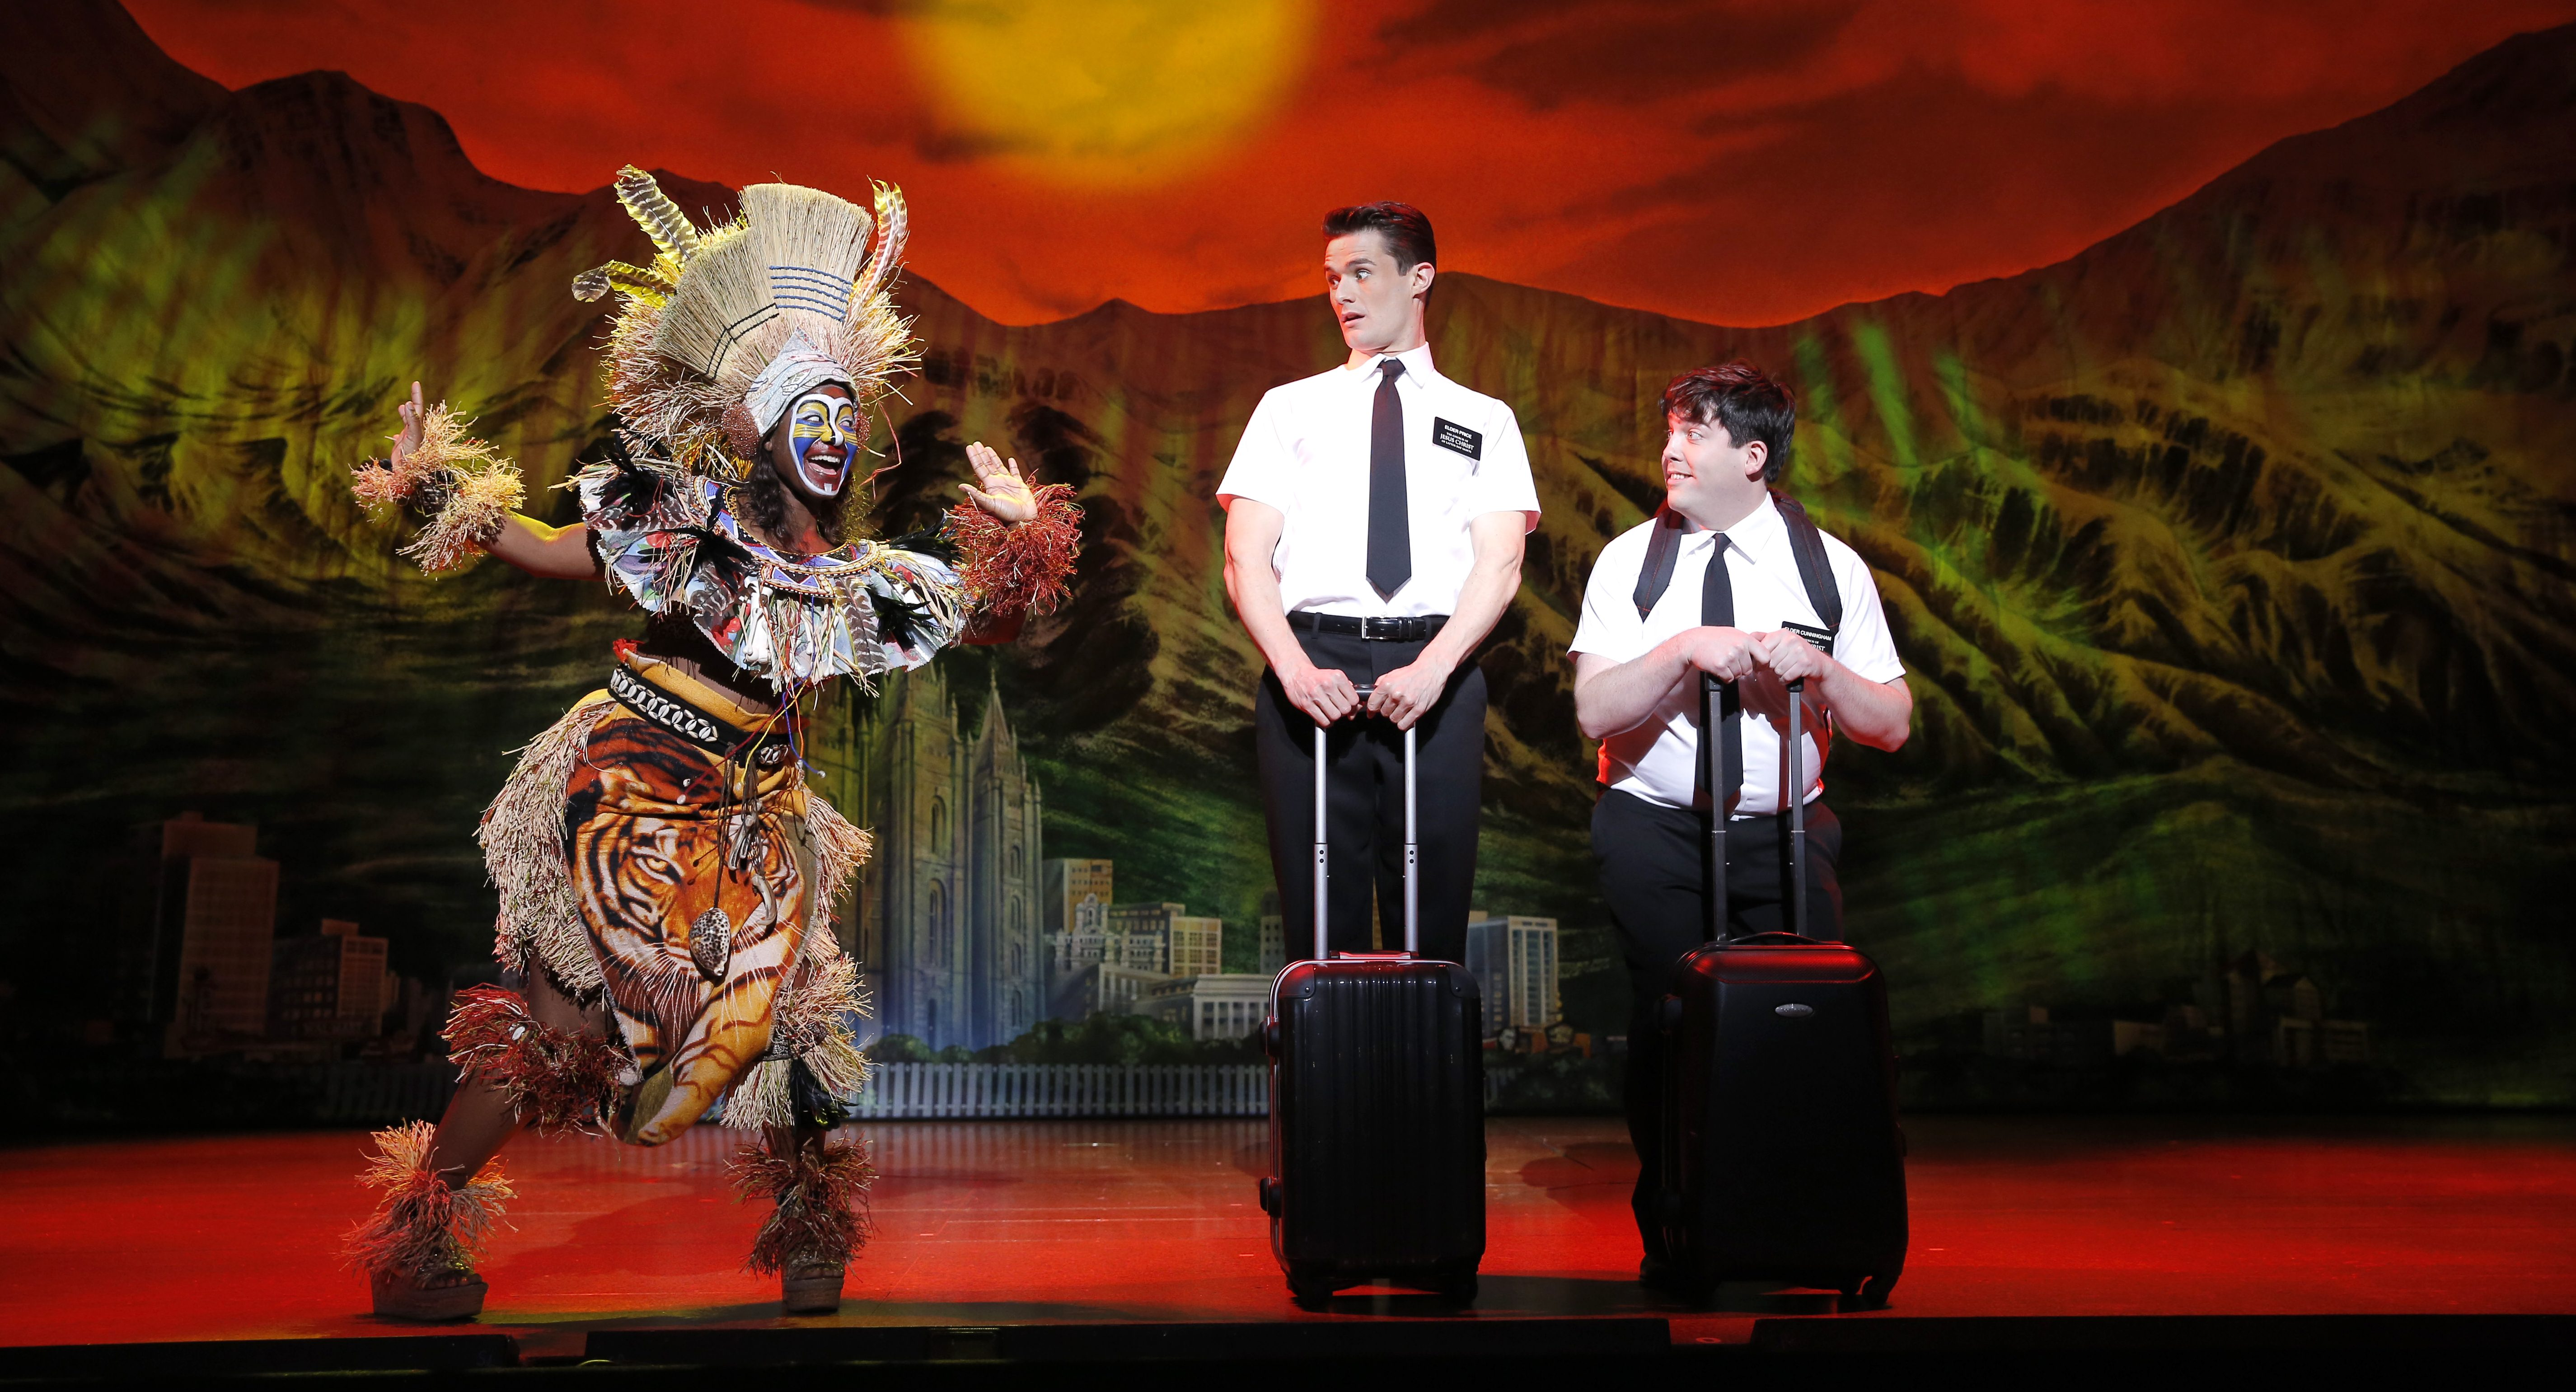 In 'The Book of Mormon,' missionaries Kevin and Arnold have a feeling they're not in Utah any more. (The photo is from the 2013 touring production.)